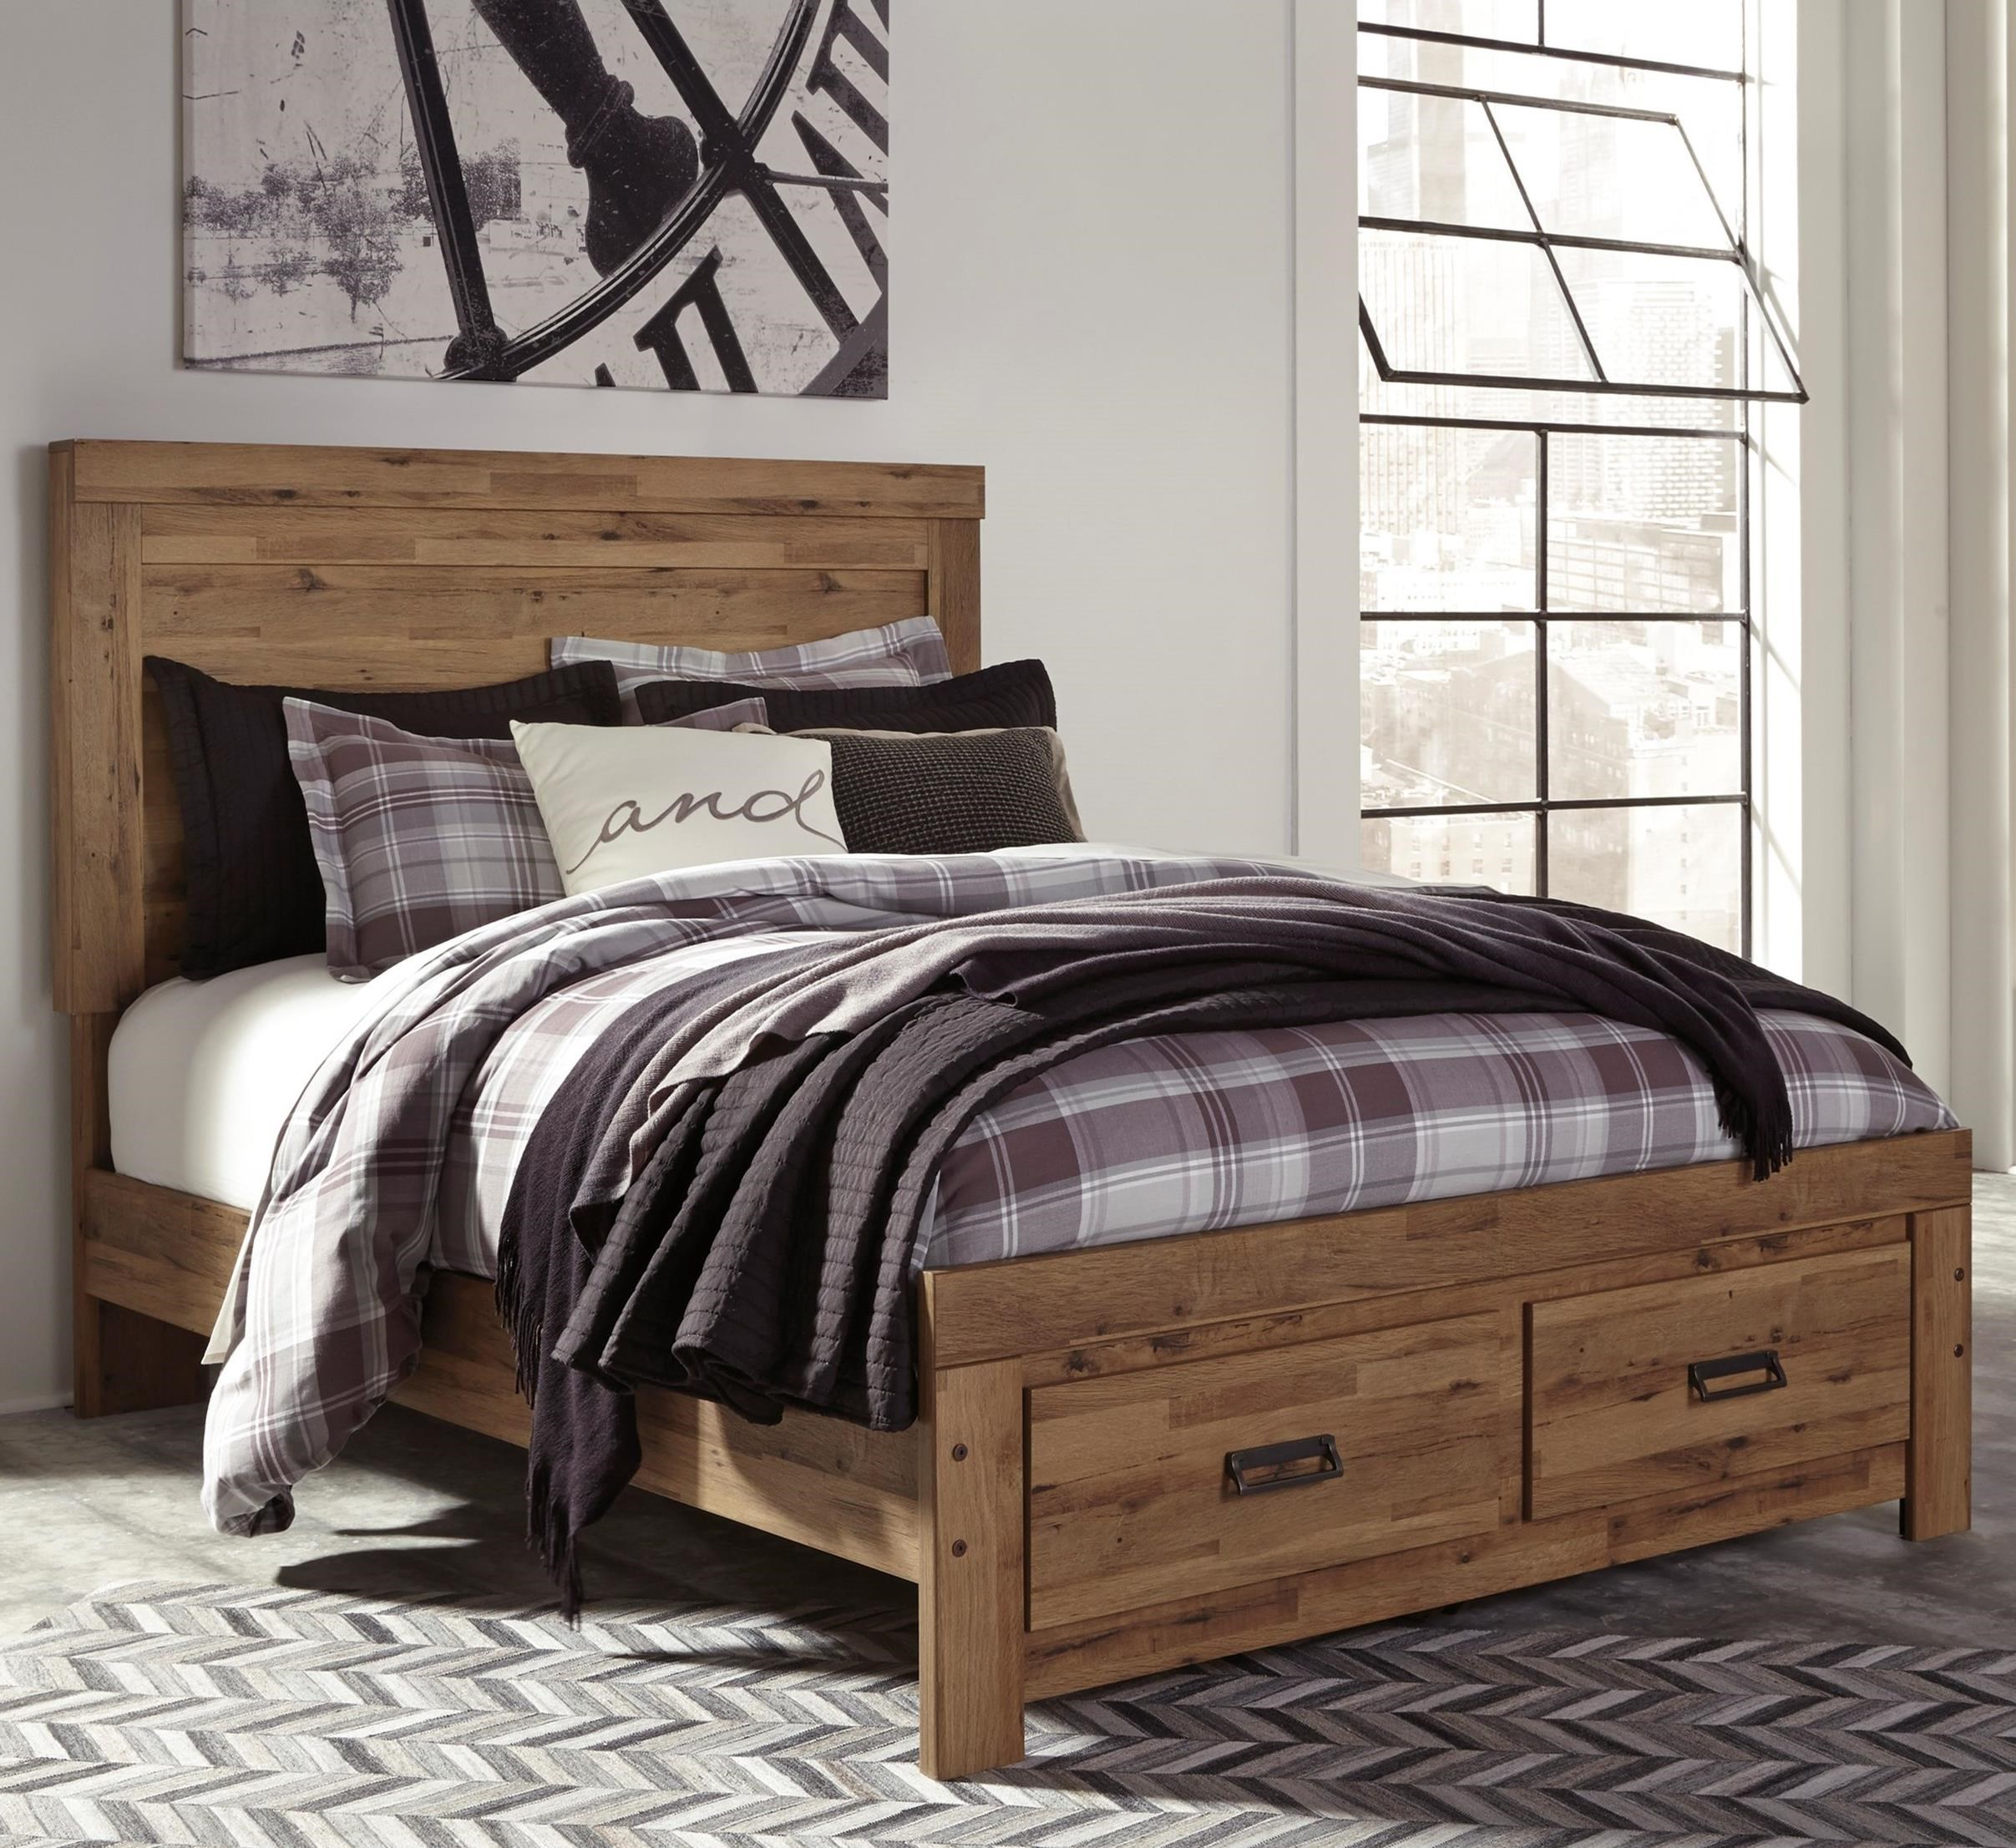 Signature Design By Ashley Cinrey King Panel Storage Bed With 2 Footboard Drawers Del Sol